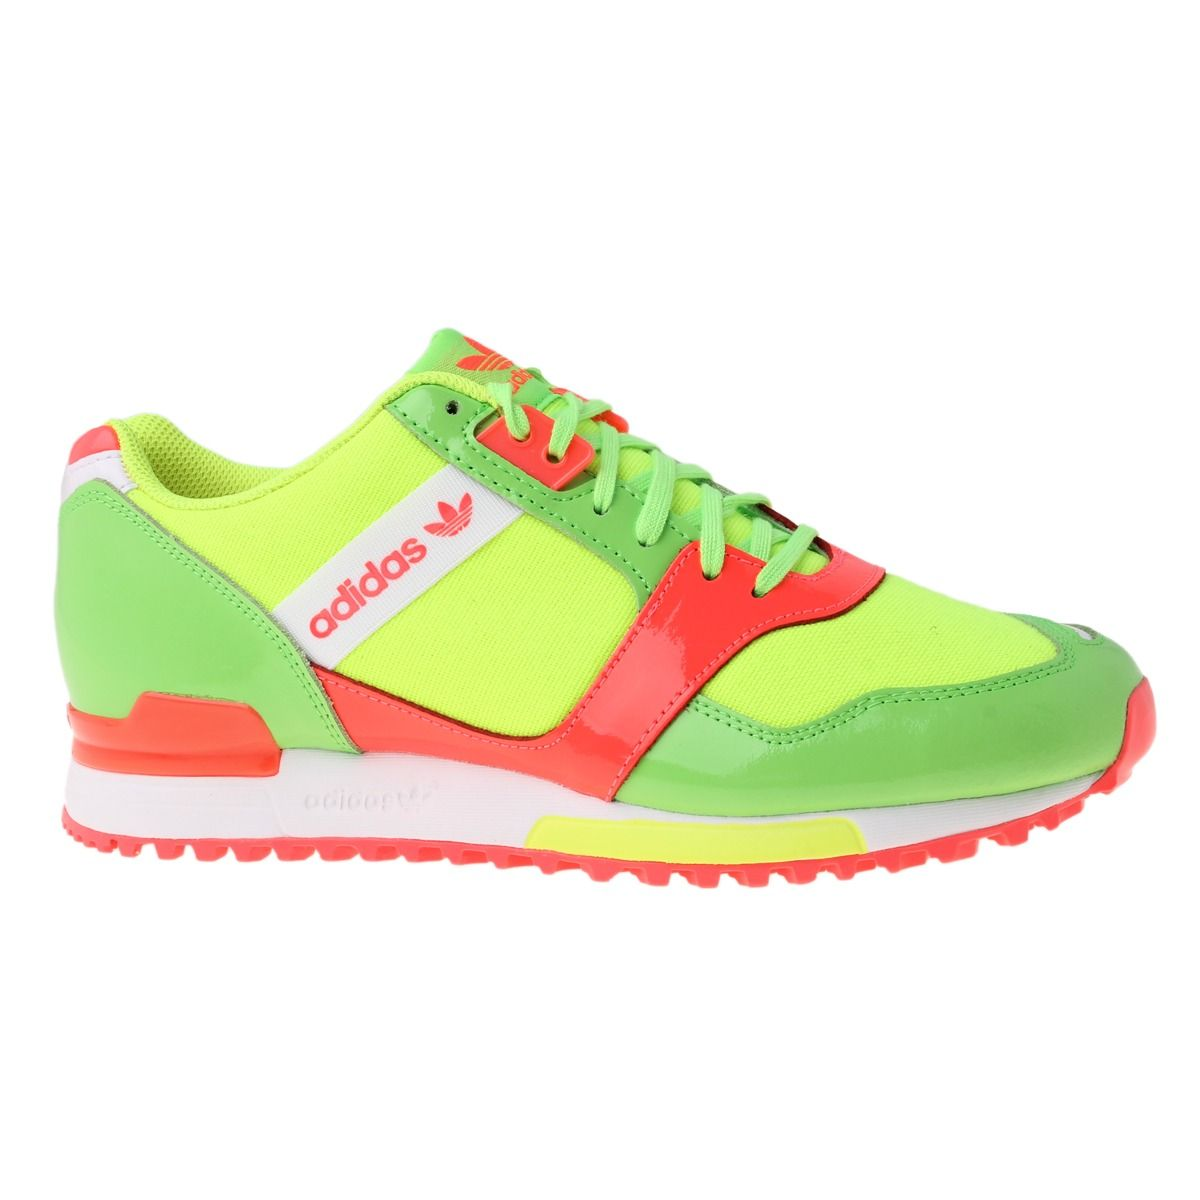 052082a1c4d Zapatillas Adidas Original Zx 700 Contemp W -   799